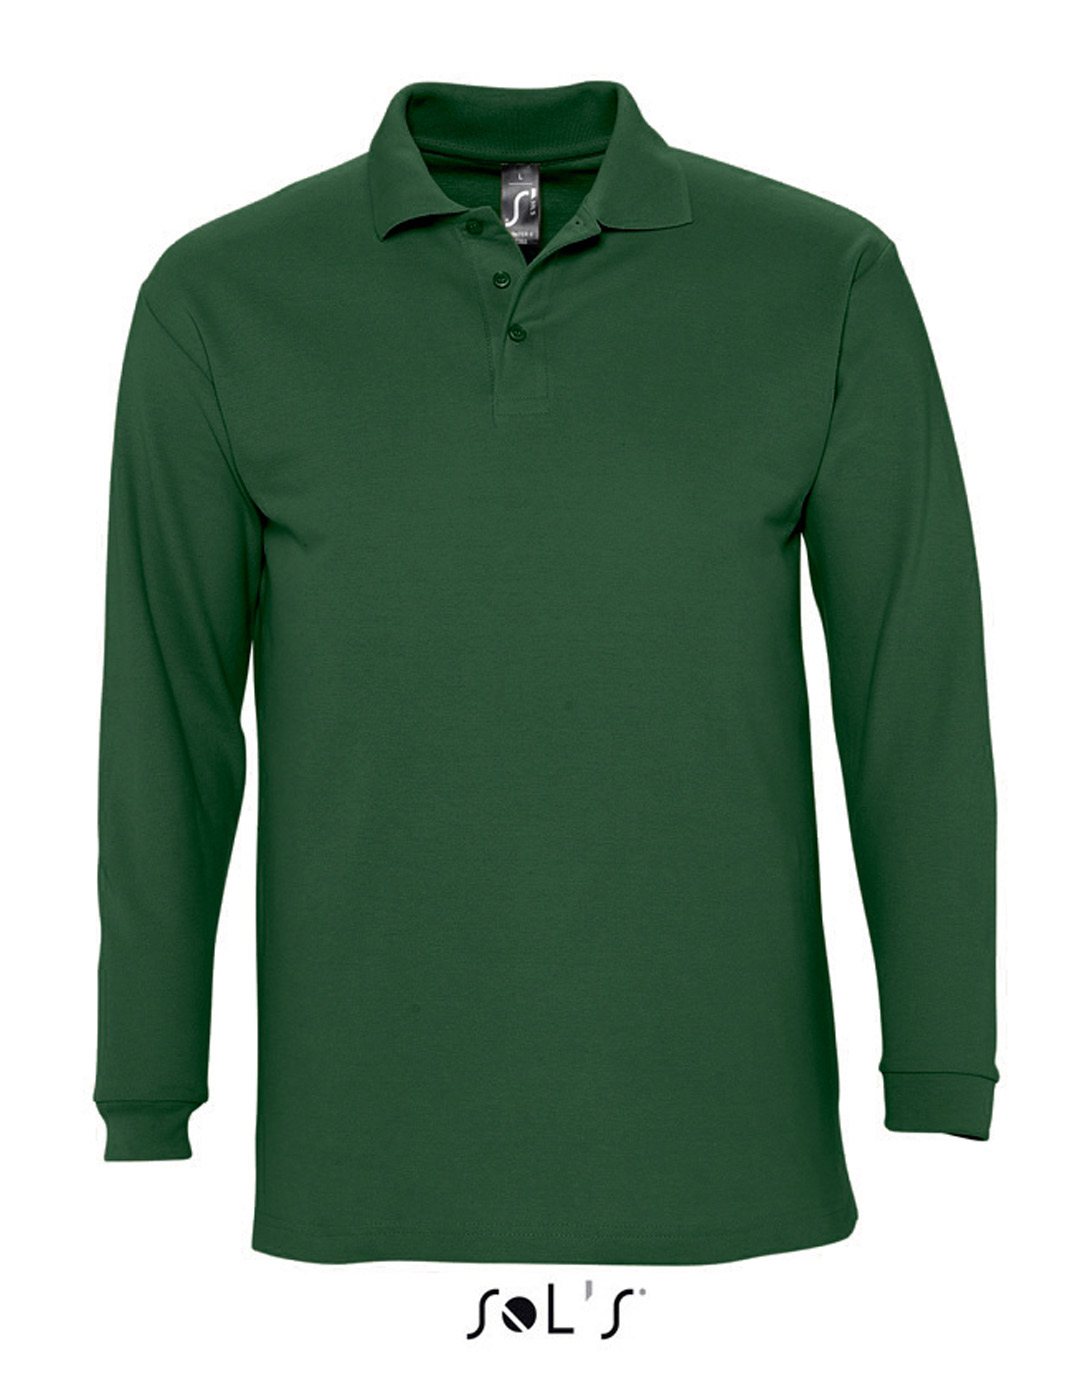 Winter ii 11353 golf green a